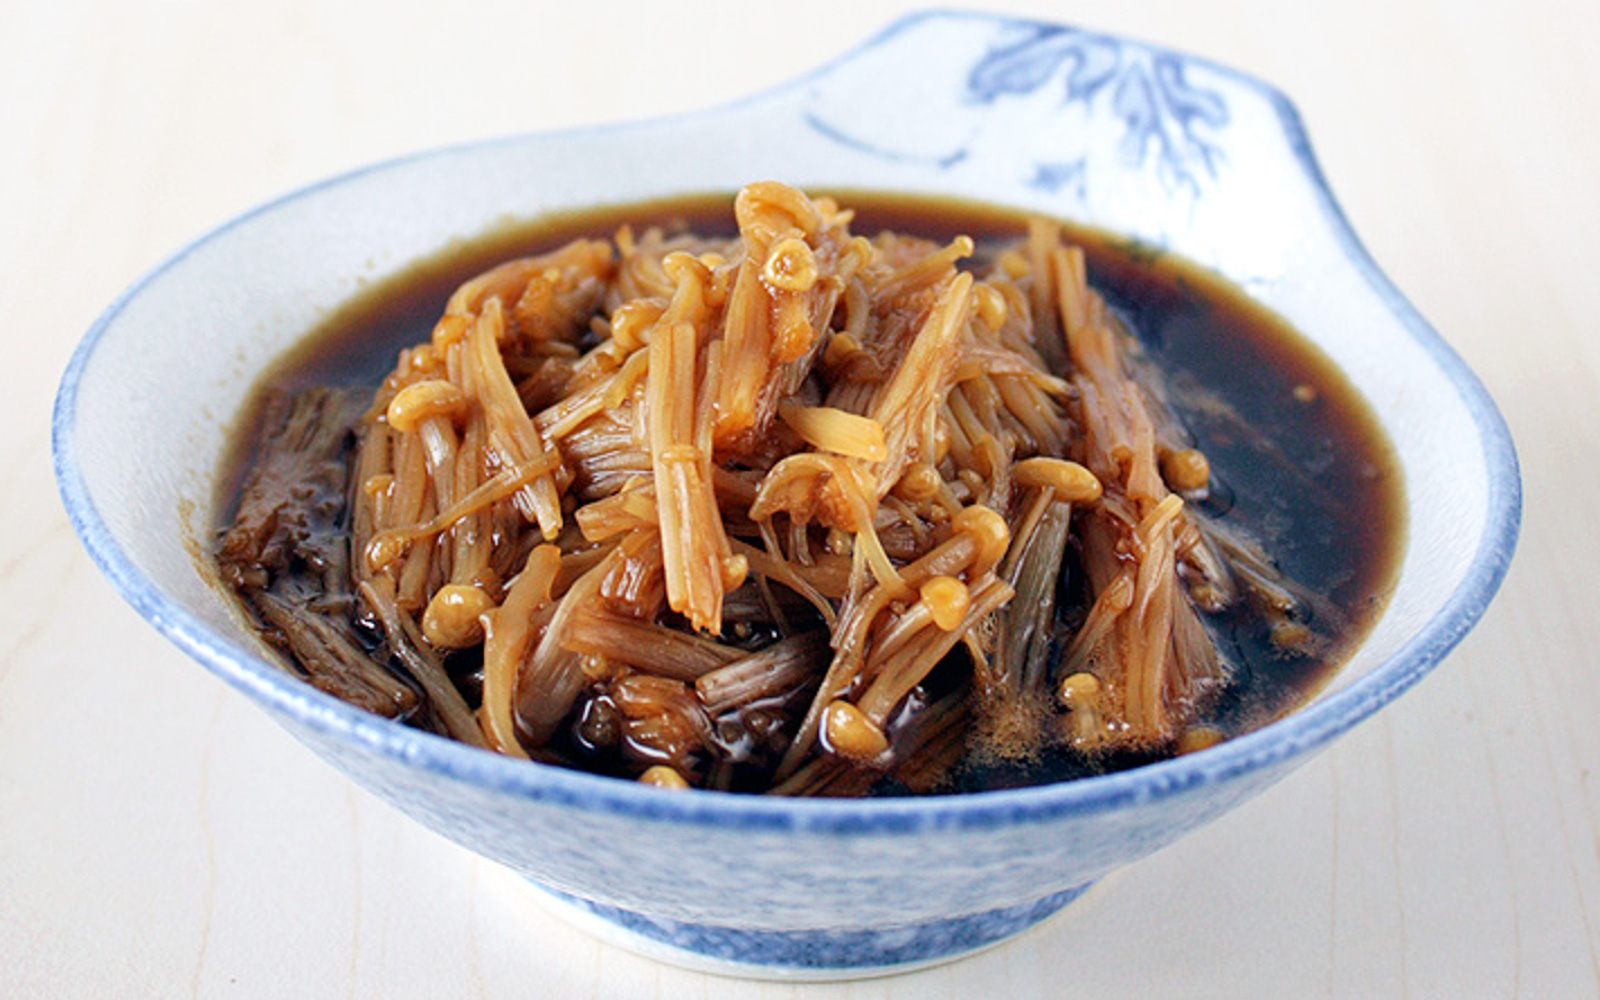 Nametaki: Enoki Mushrooms in Mirin and Soy Sauce